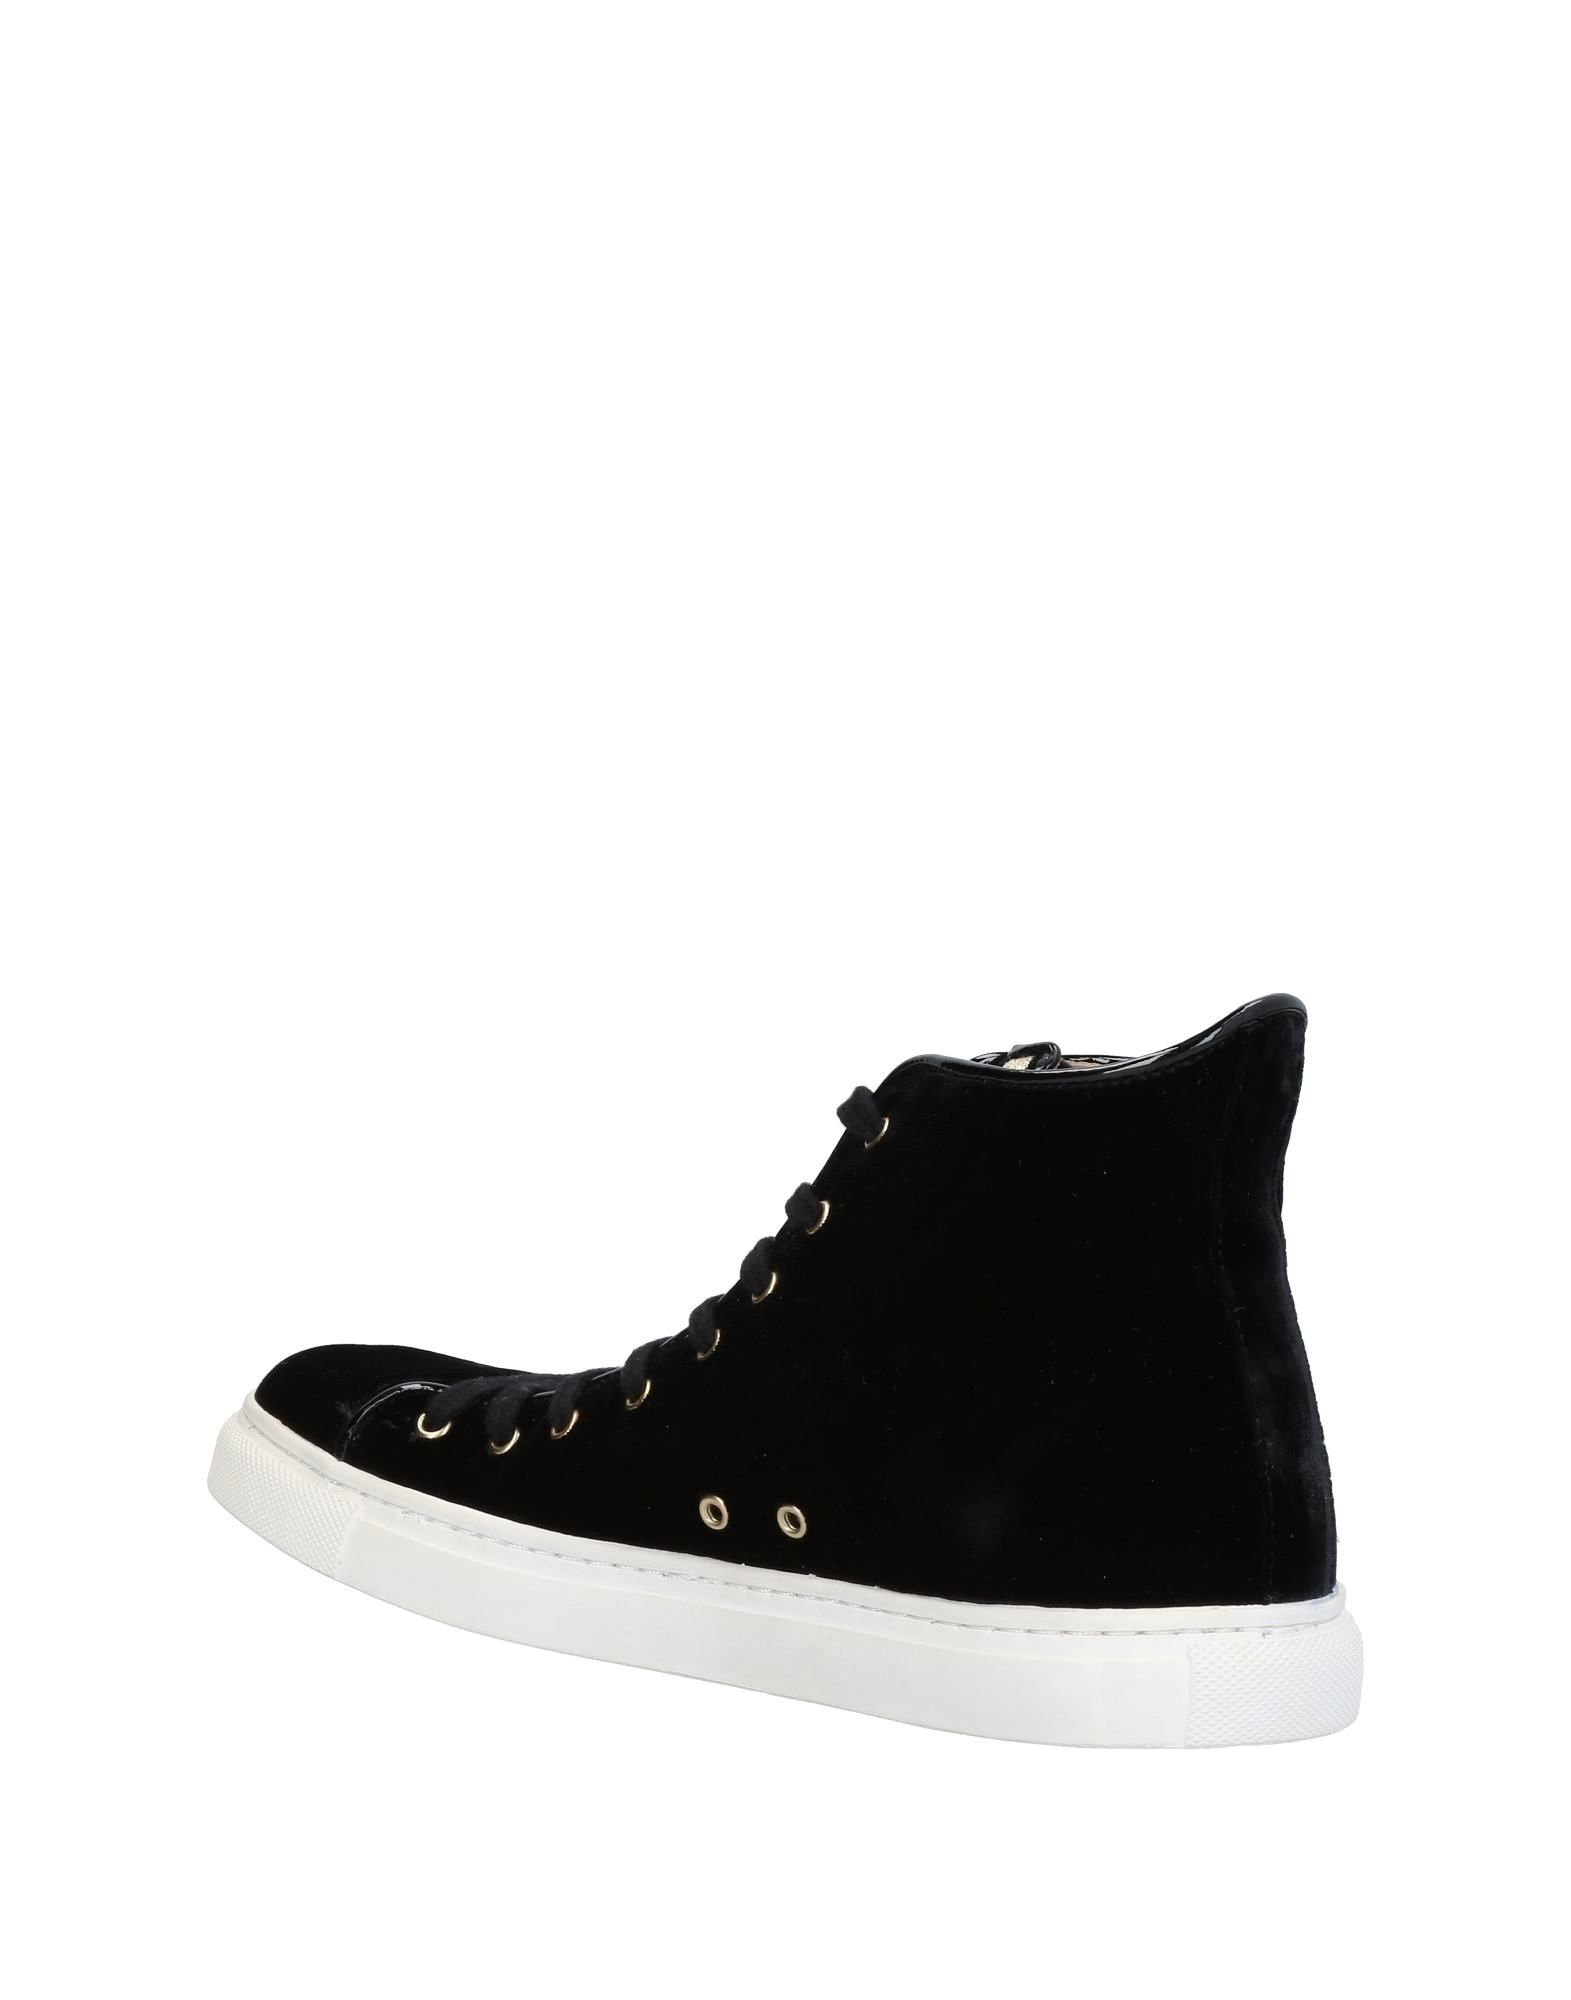 Sneakers Charlotte Olympia Femme - Sneakers Charlotte Olympia sur